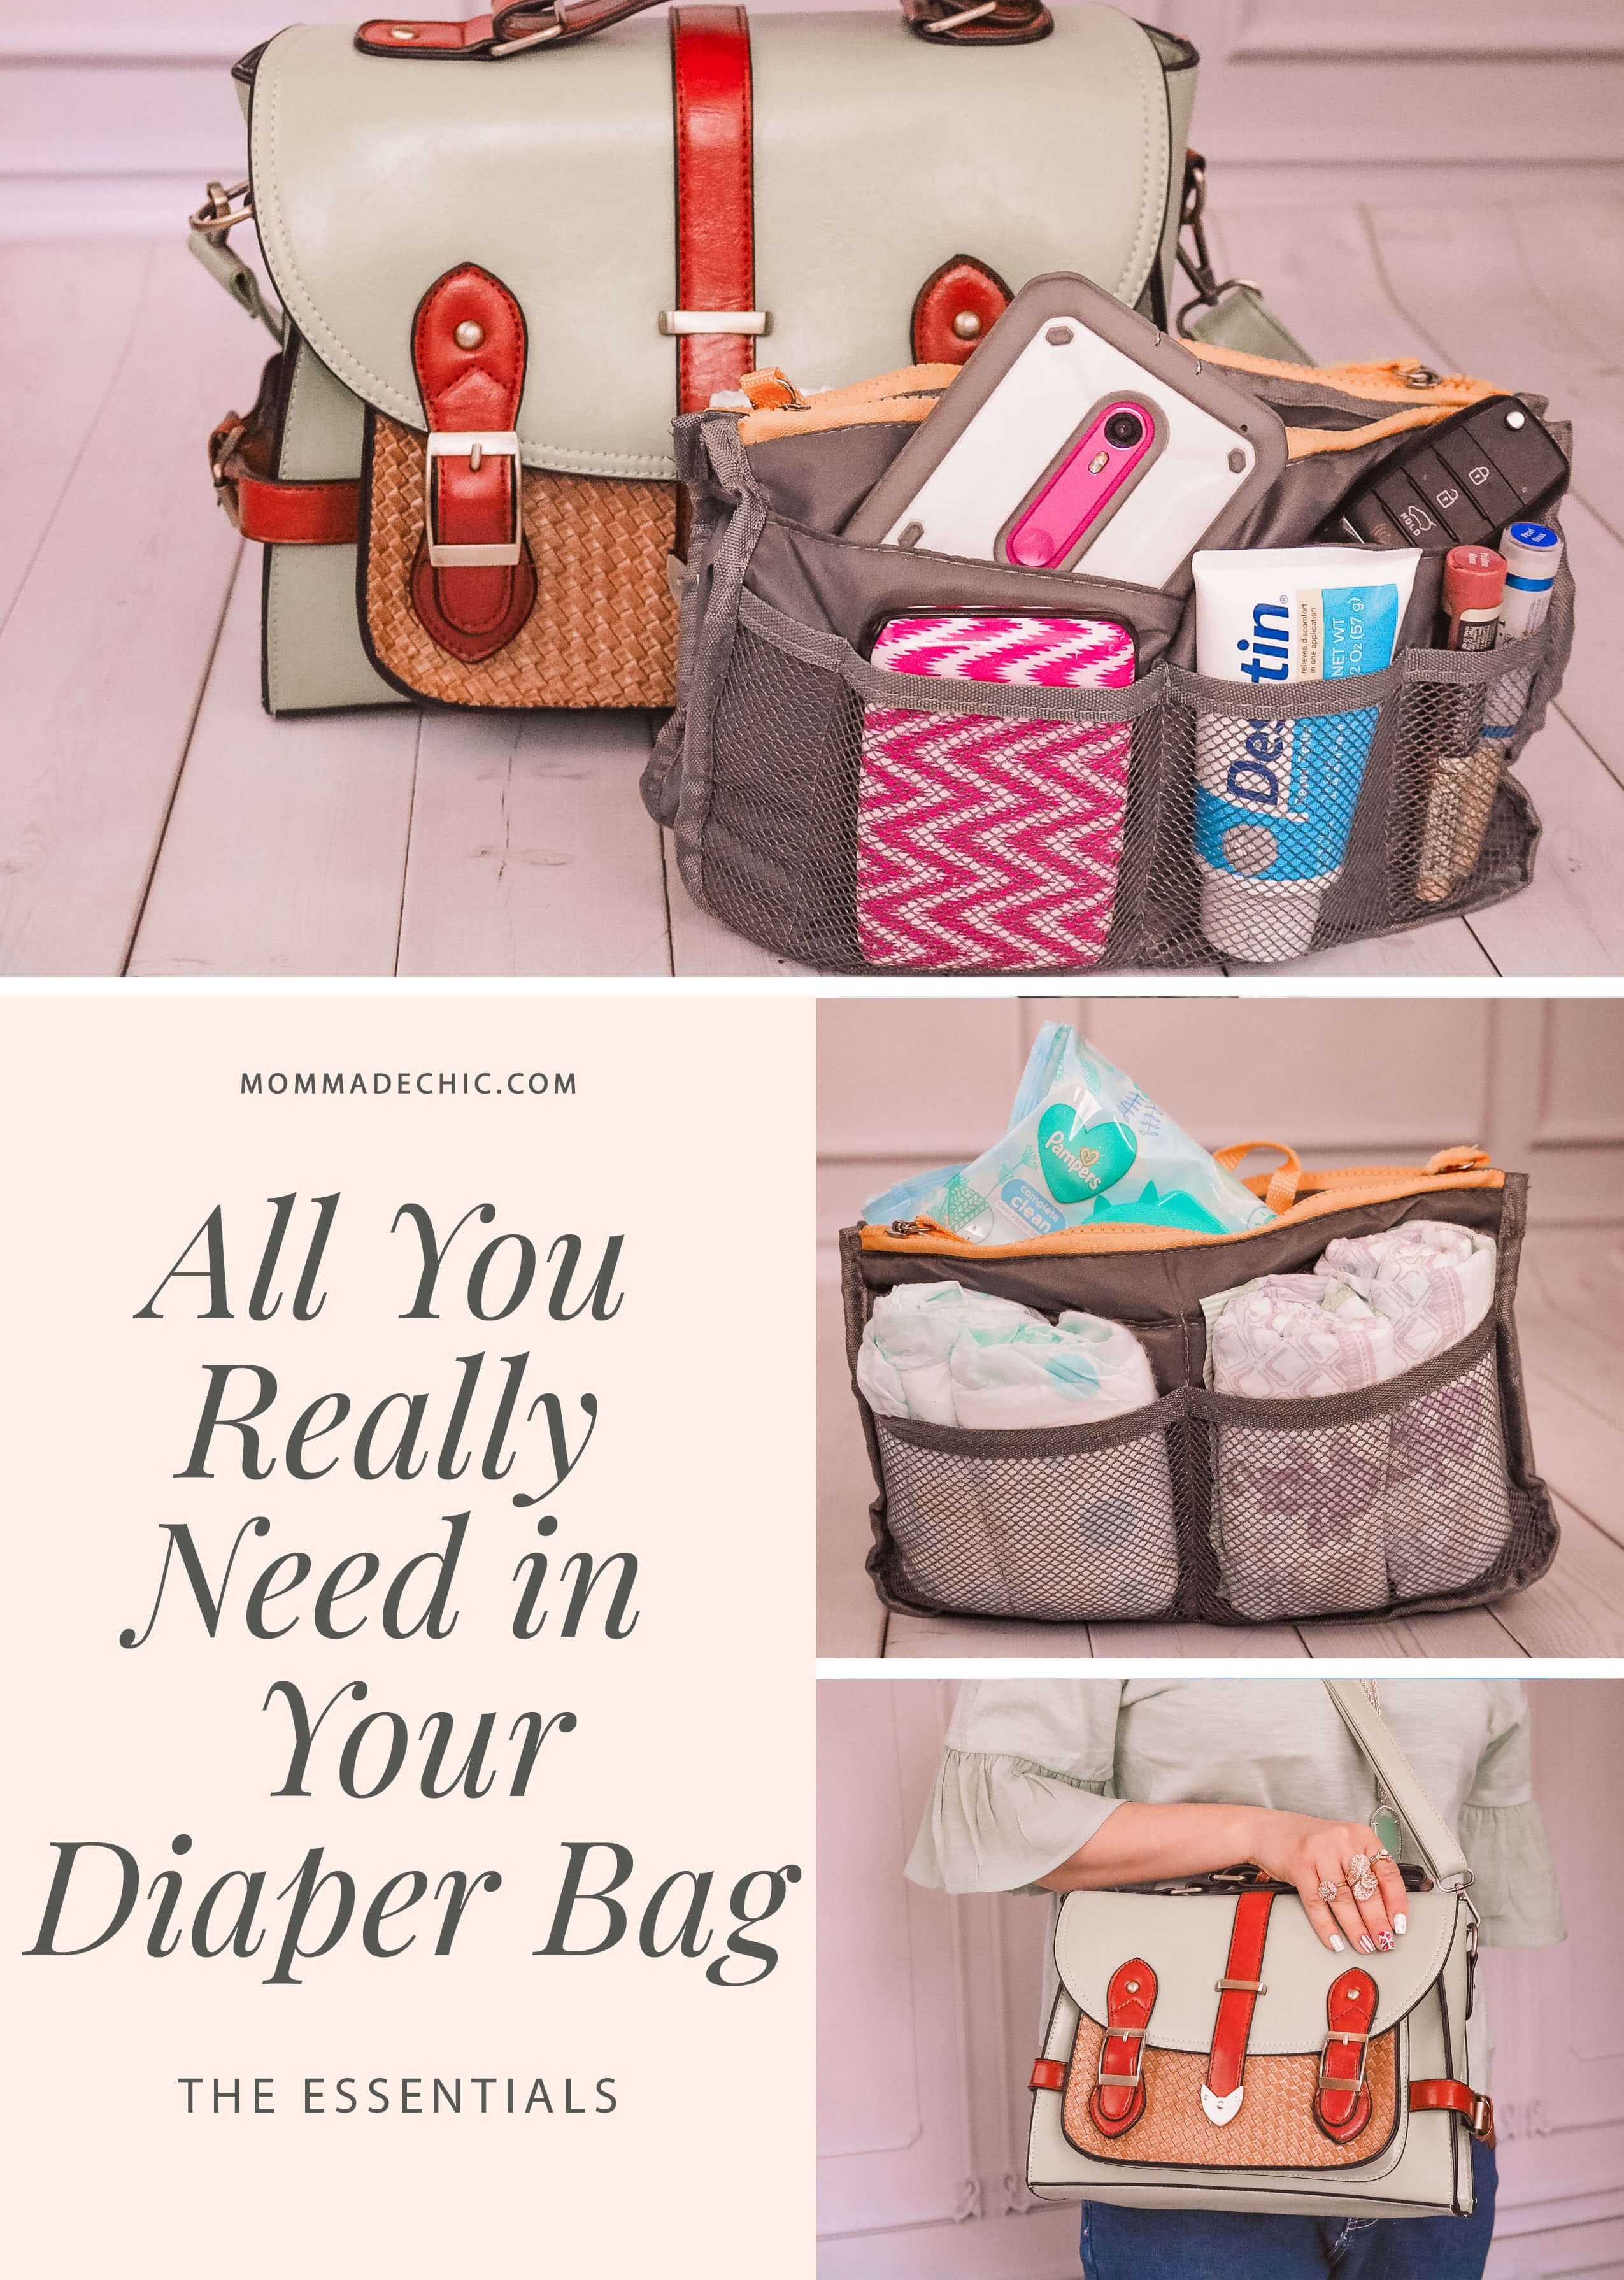 All You Really Need in Your Diaper Bag